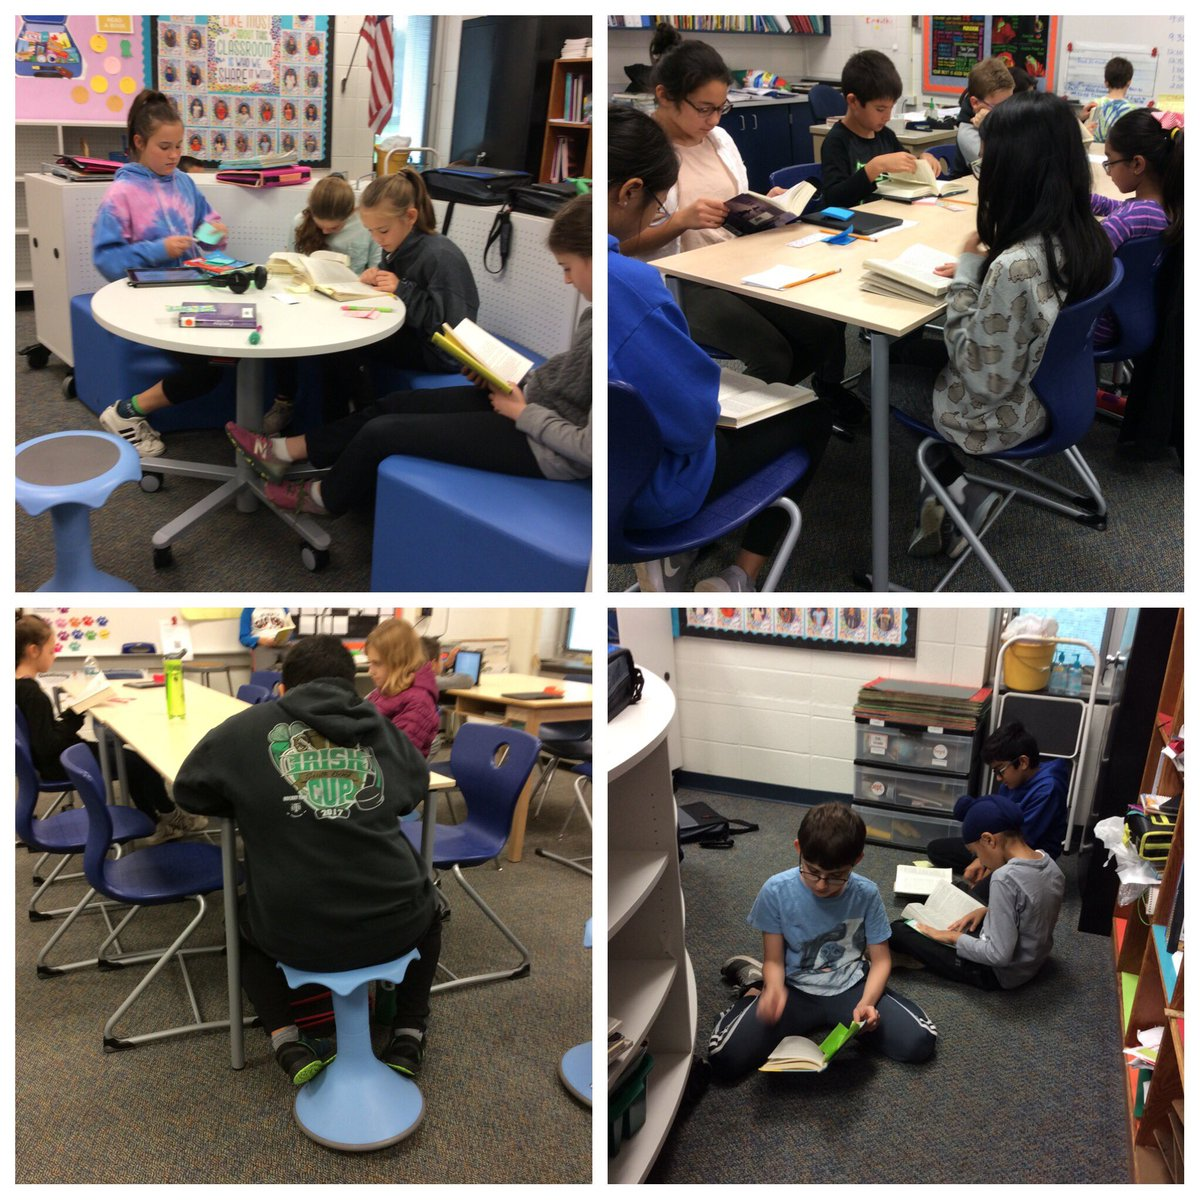 test Twitter Media - Our new furniture gives us options of places to read. #d30learns https://t.co/notEE9ZSm8